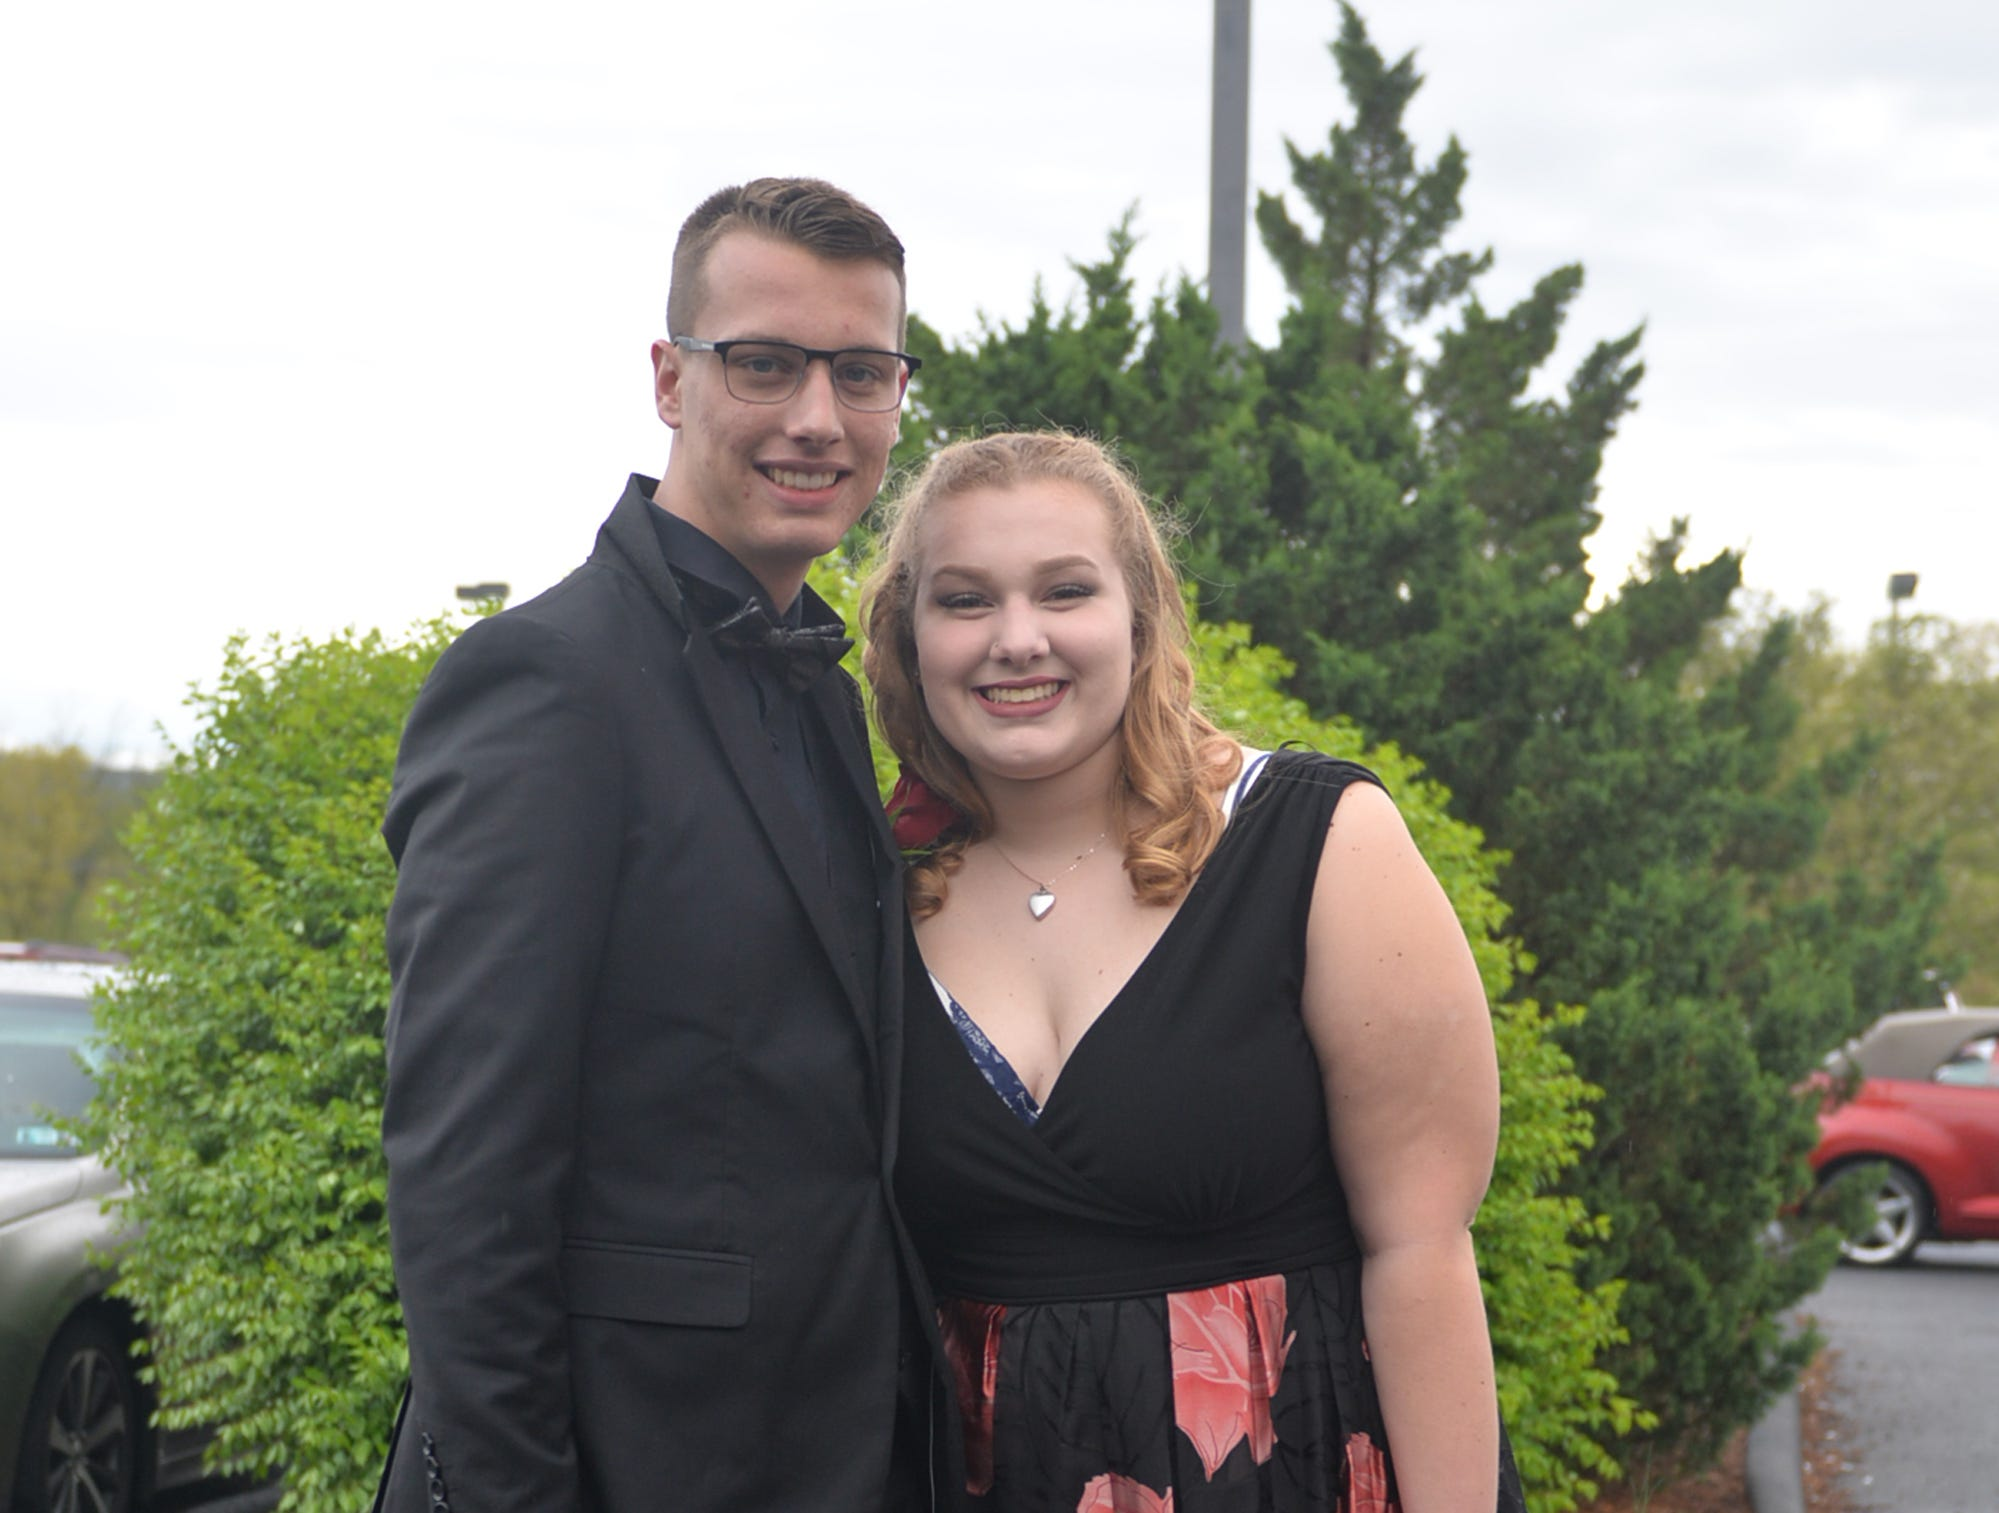 The Northern Lebanon High School Prom was held at the Holiday Inn Harrisburg at Grantville, PA on Friday, April 26, 2019.